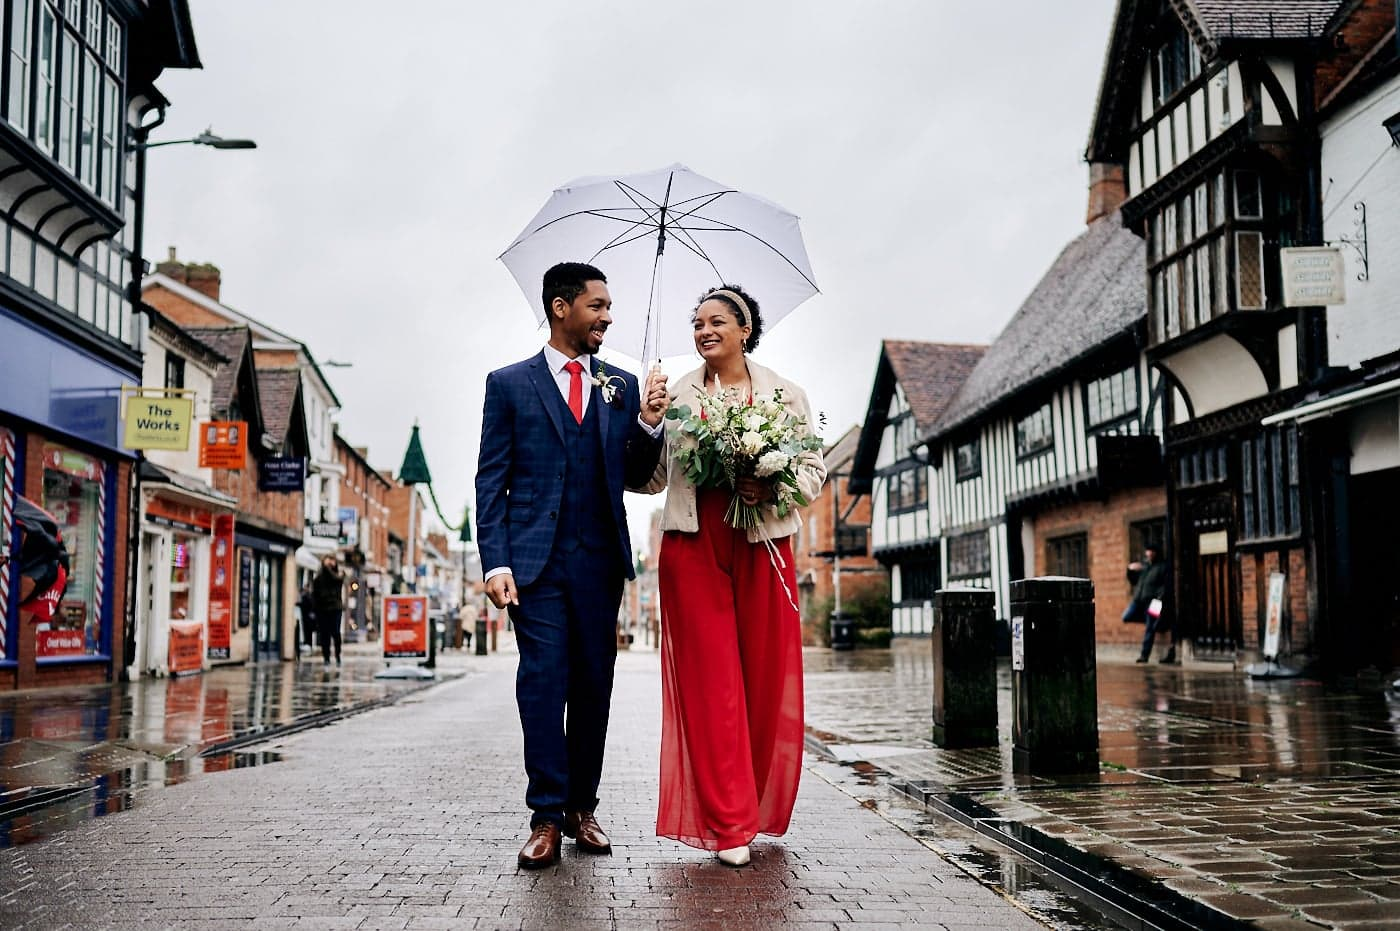 Bride in red trouser suit and groom in blue suit walk under umbrella through streets of Stratford-upon-Avon